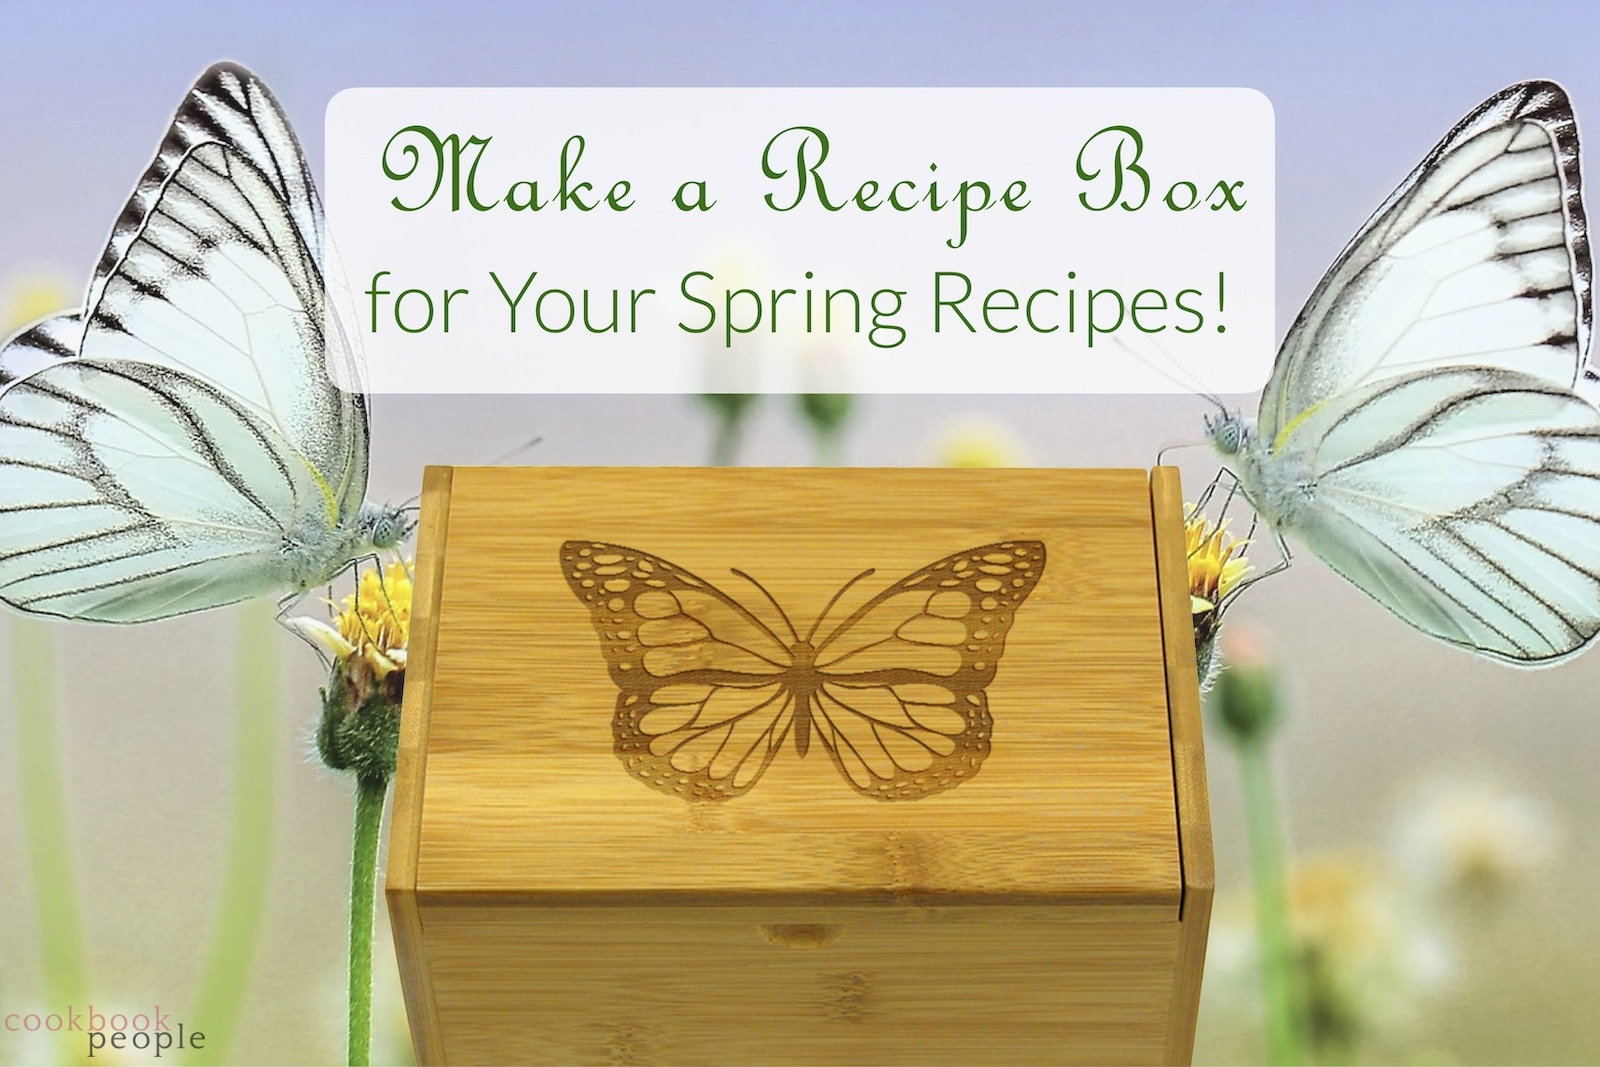 Make a Recipe Box For Your Spring Recipes!